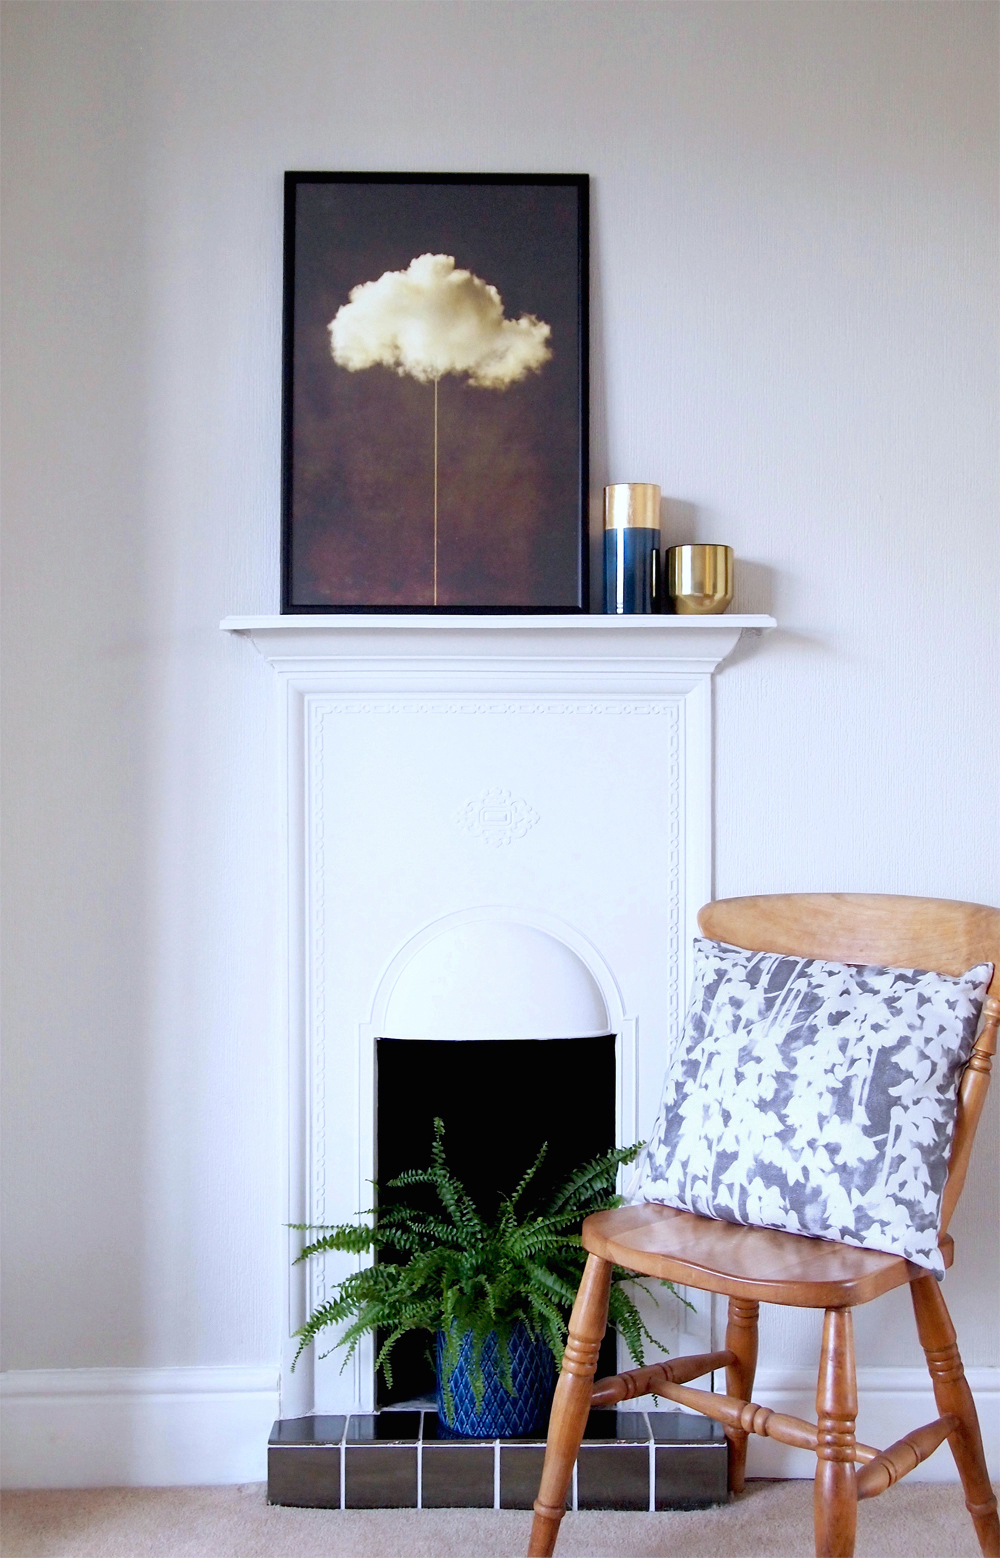 Bedroom chimney wall - Arty Home.jpg